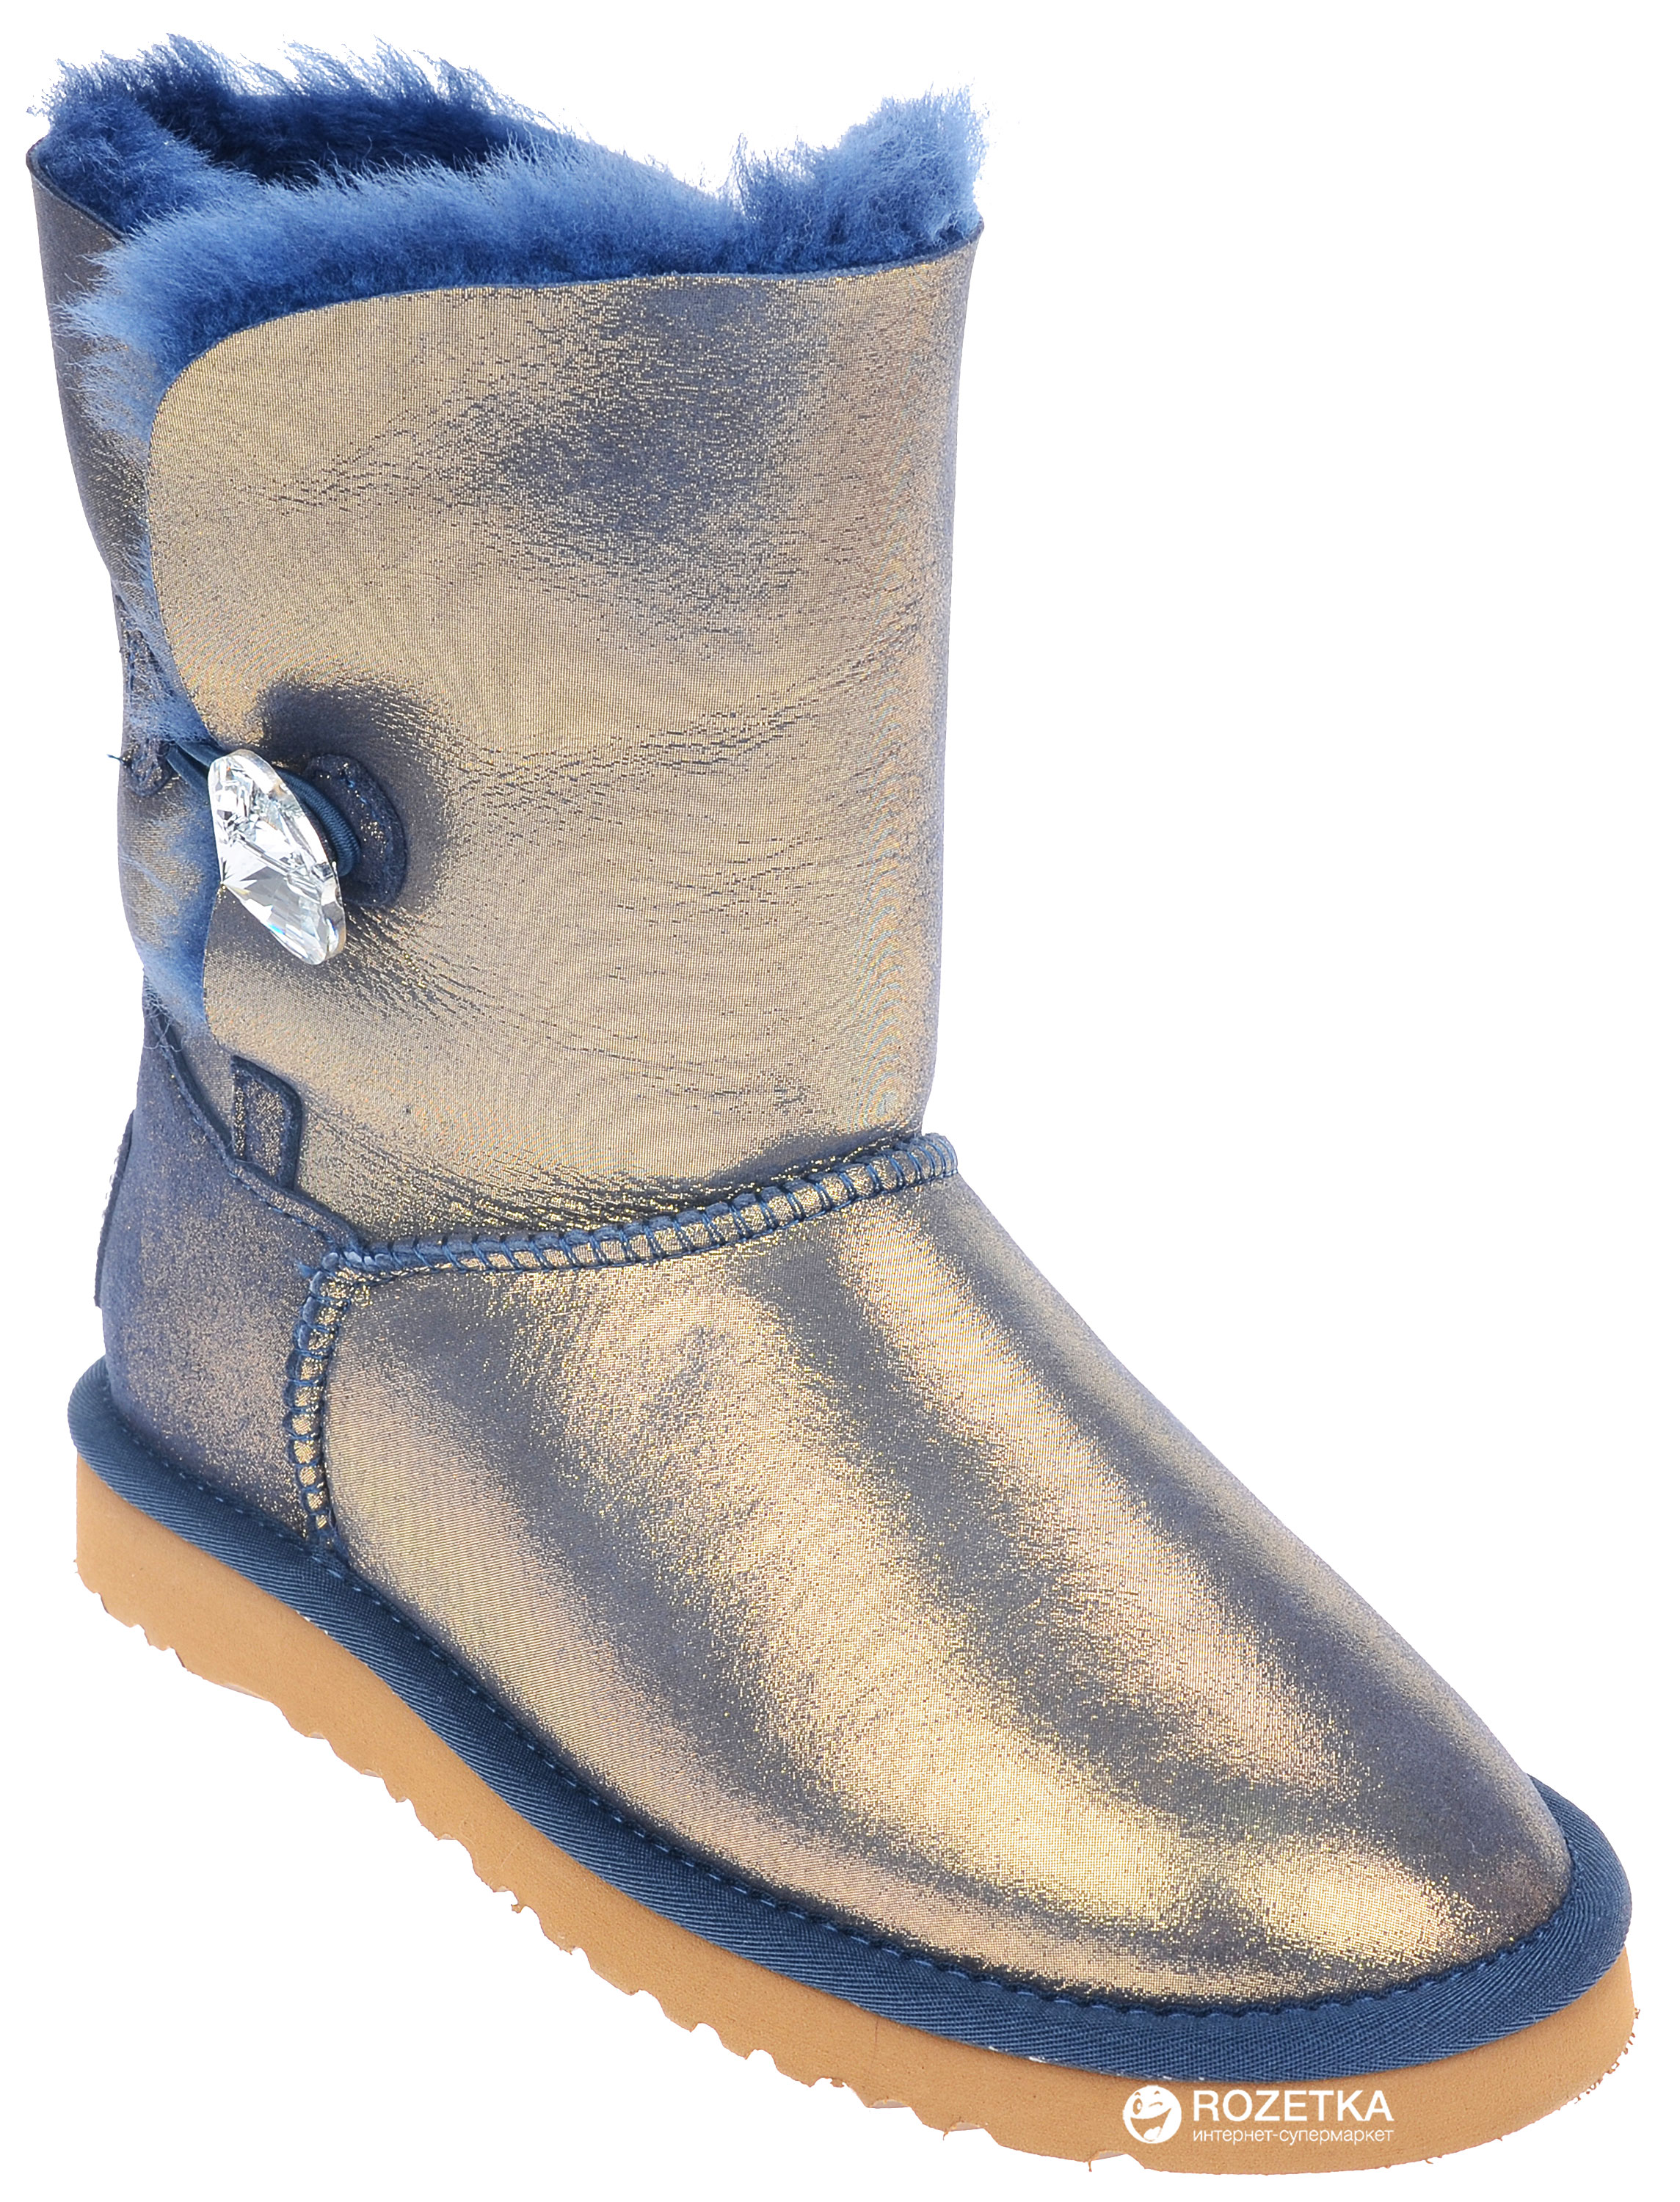 696d1e73cb3 norway ugg bailey button bling metallic blue ea7d1 befd6